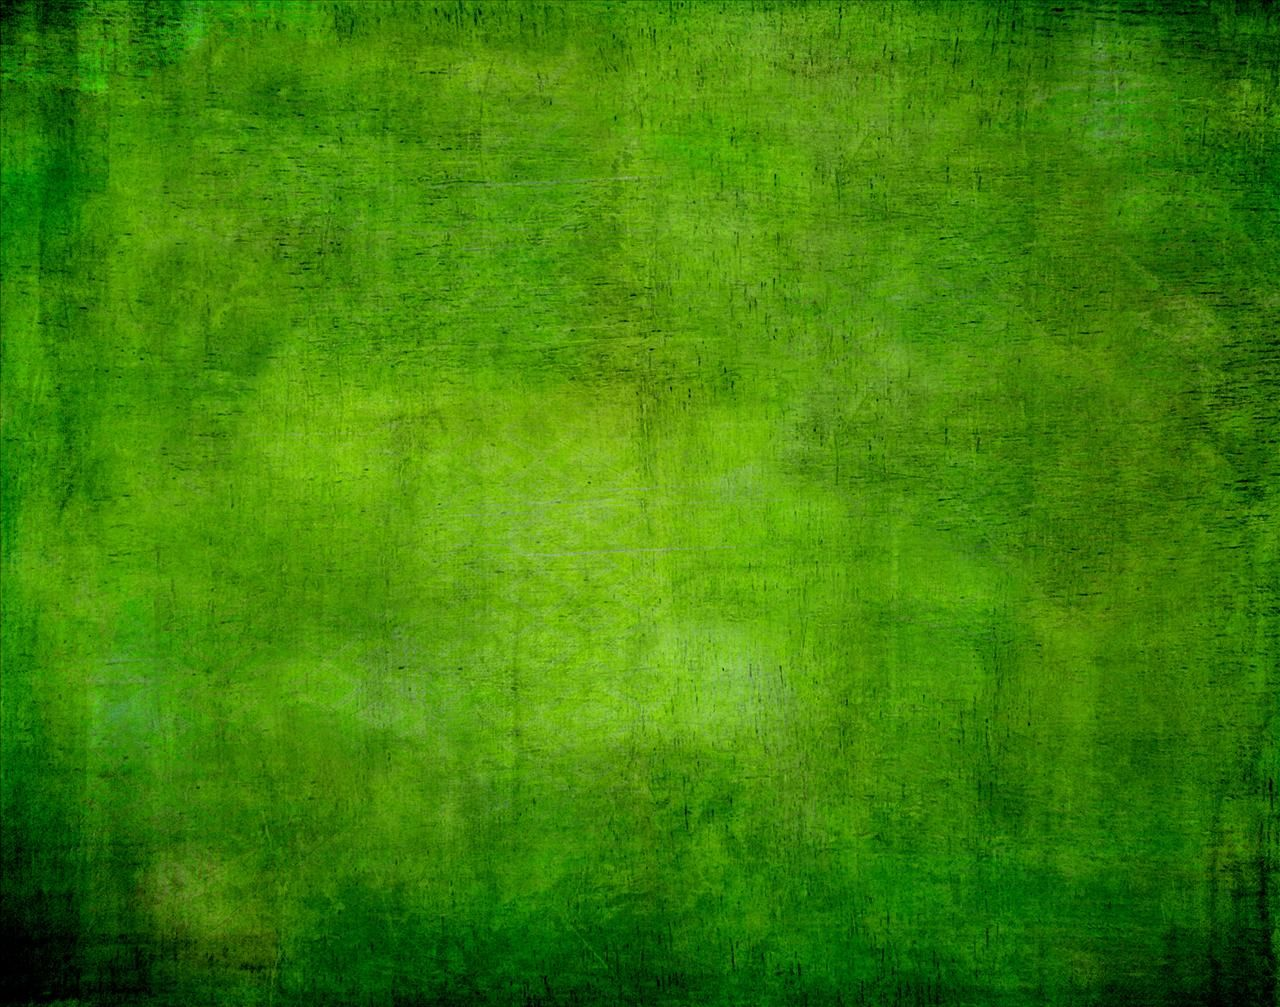 emerald abstract background hd wallpapers LOGO Abstract 1280x1007